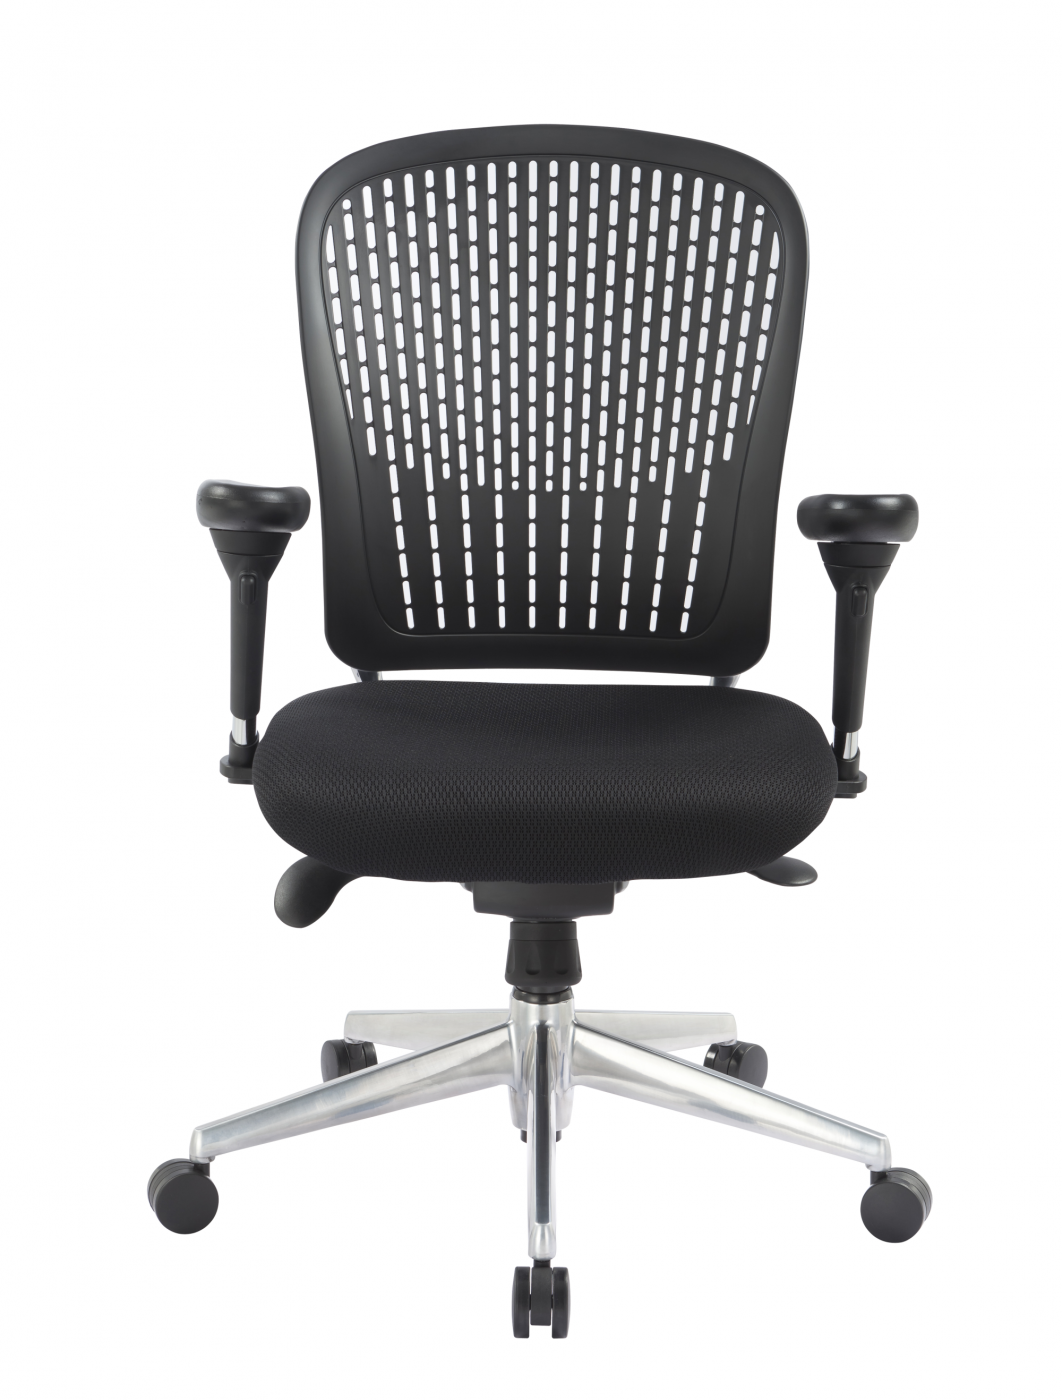 Office Chairs E Last BCM/U110   Enlarged View